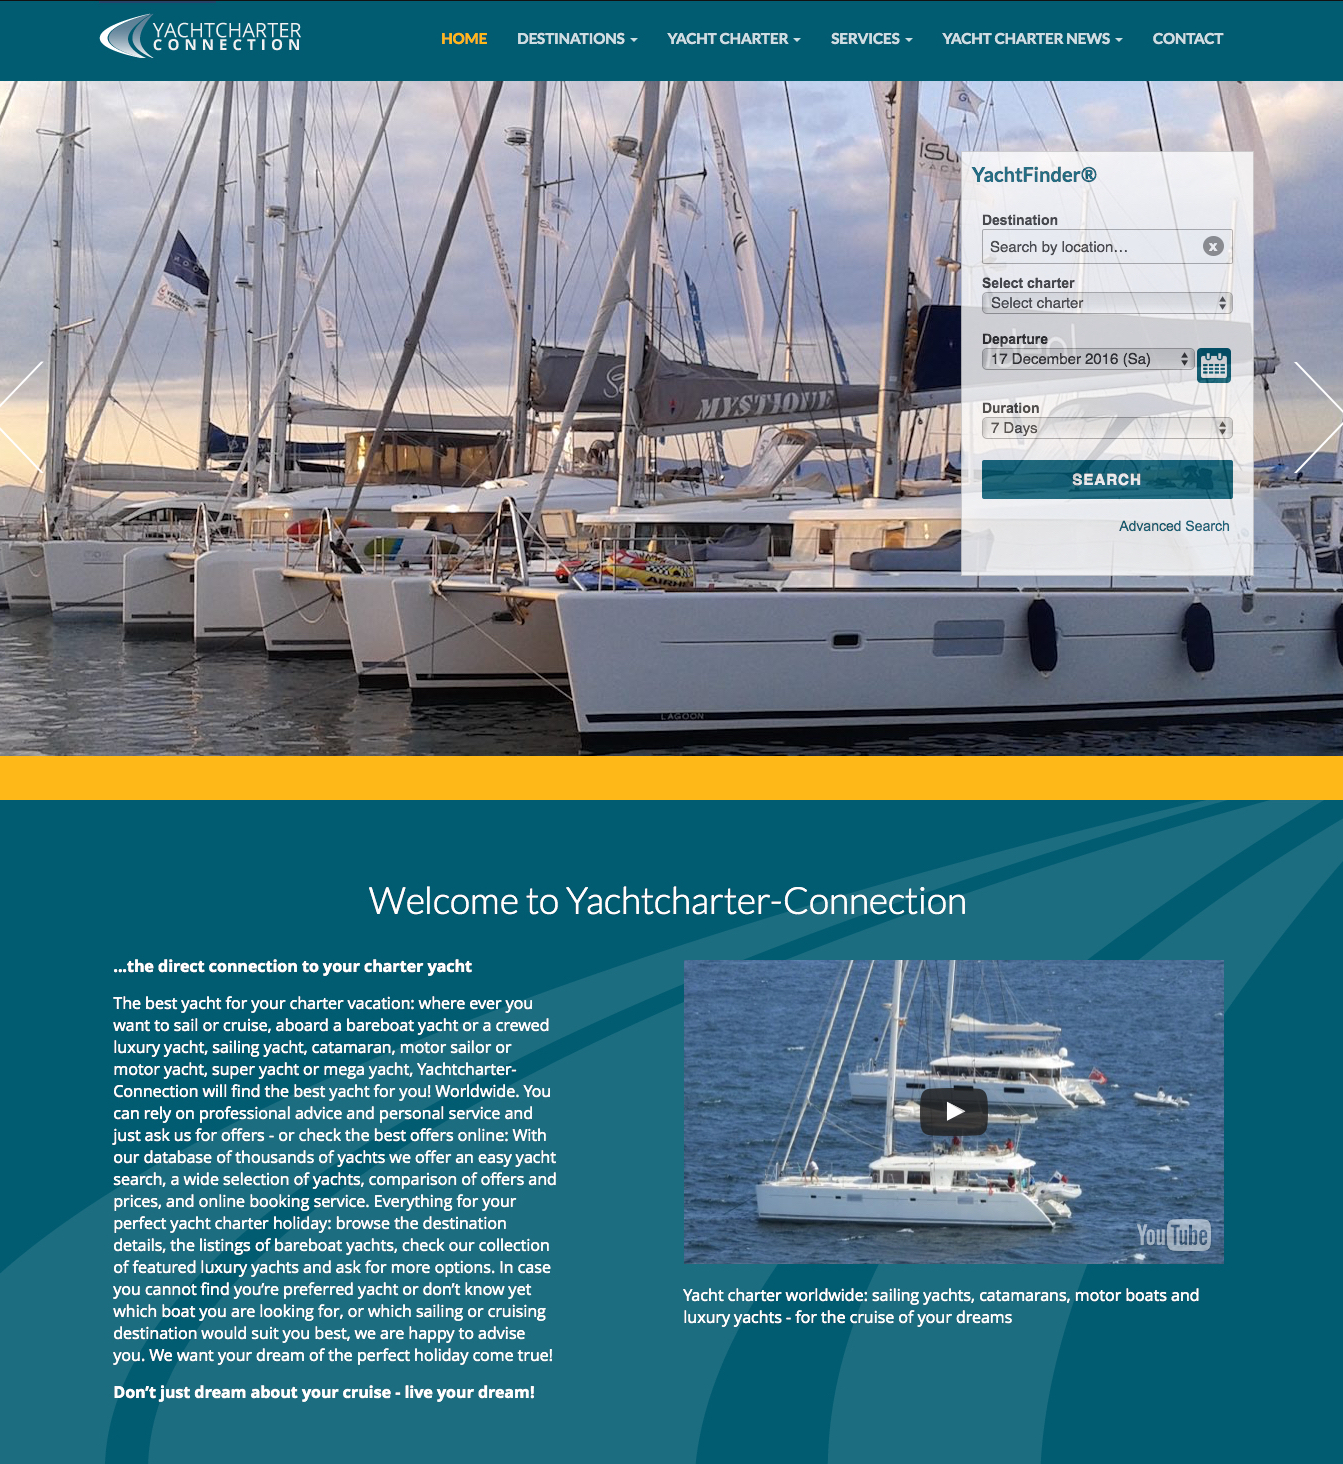 Yachtcharter-Connection - yacht charter - yachtcharter